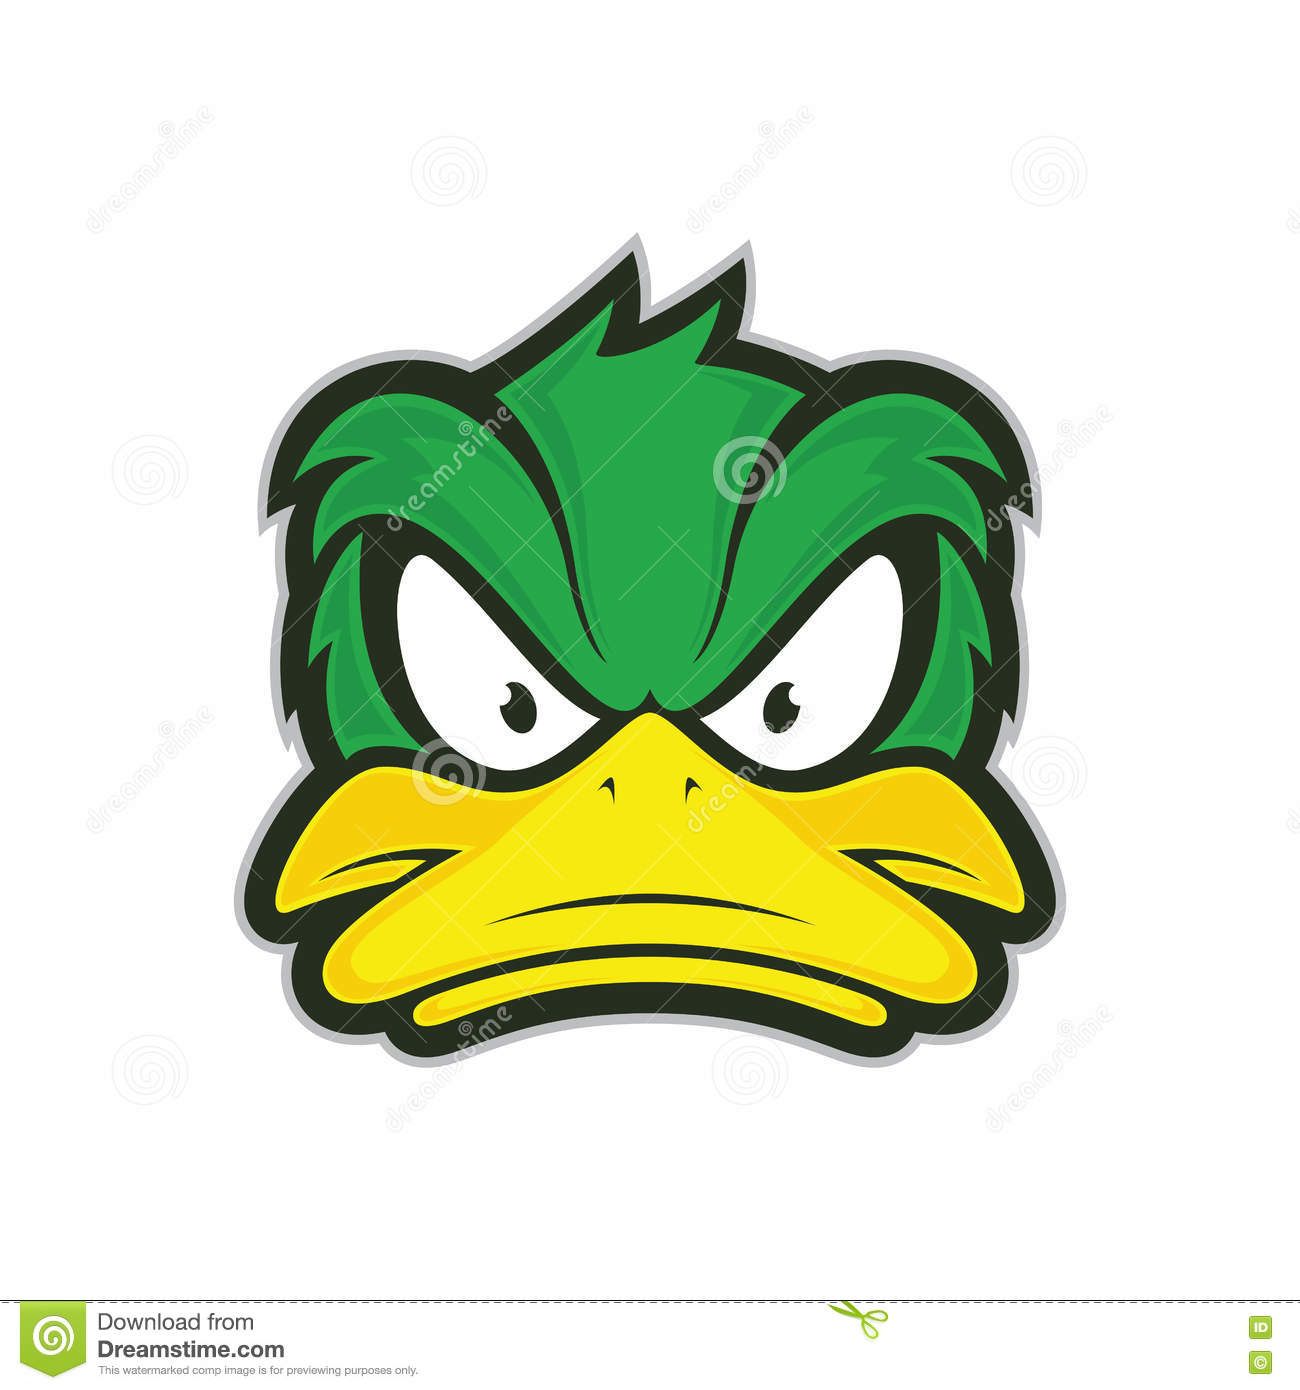 Nice wallpapers Angry Duck 1300x1390px